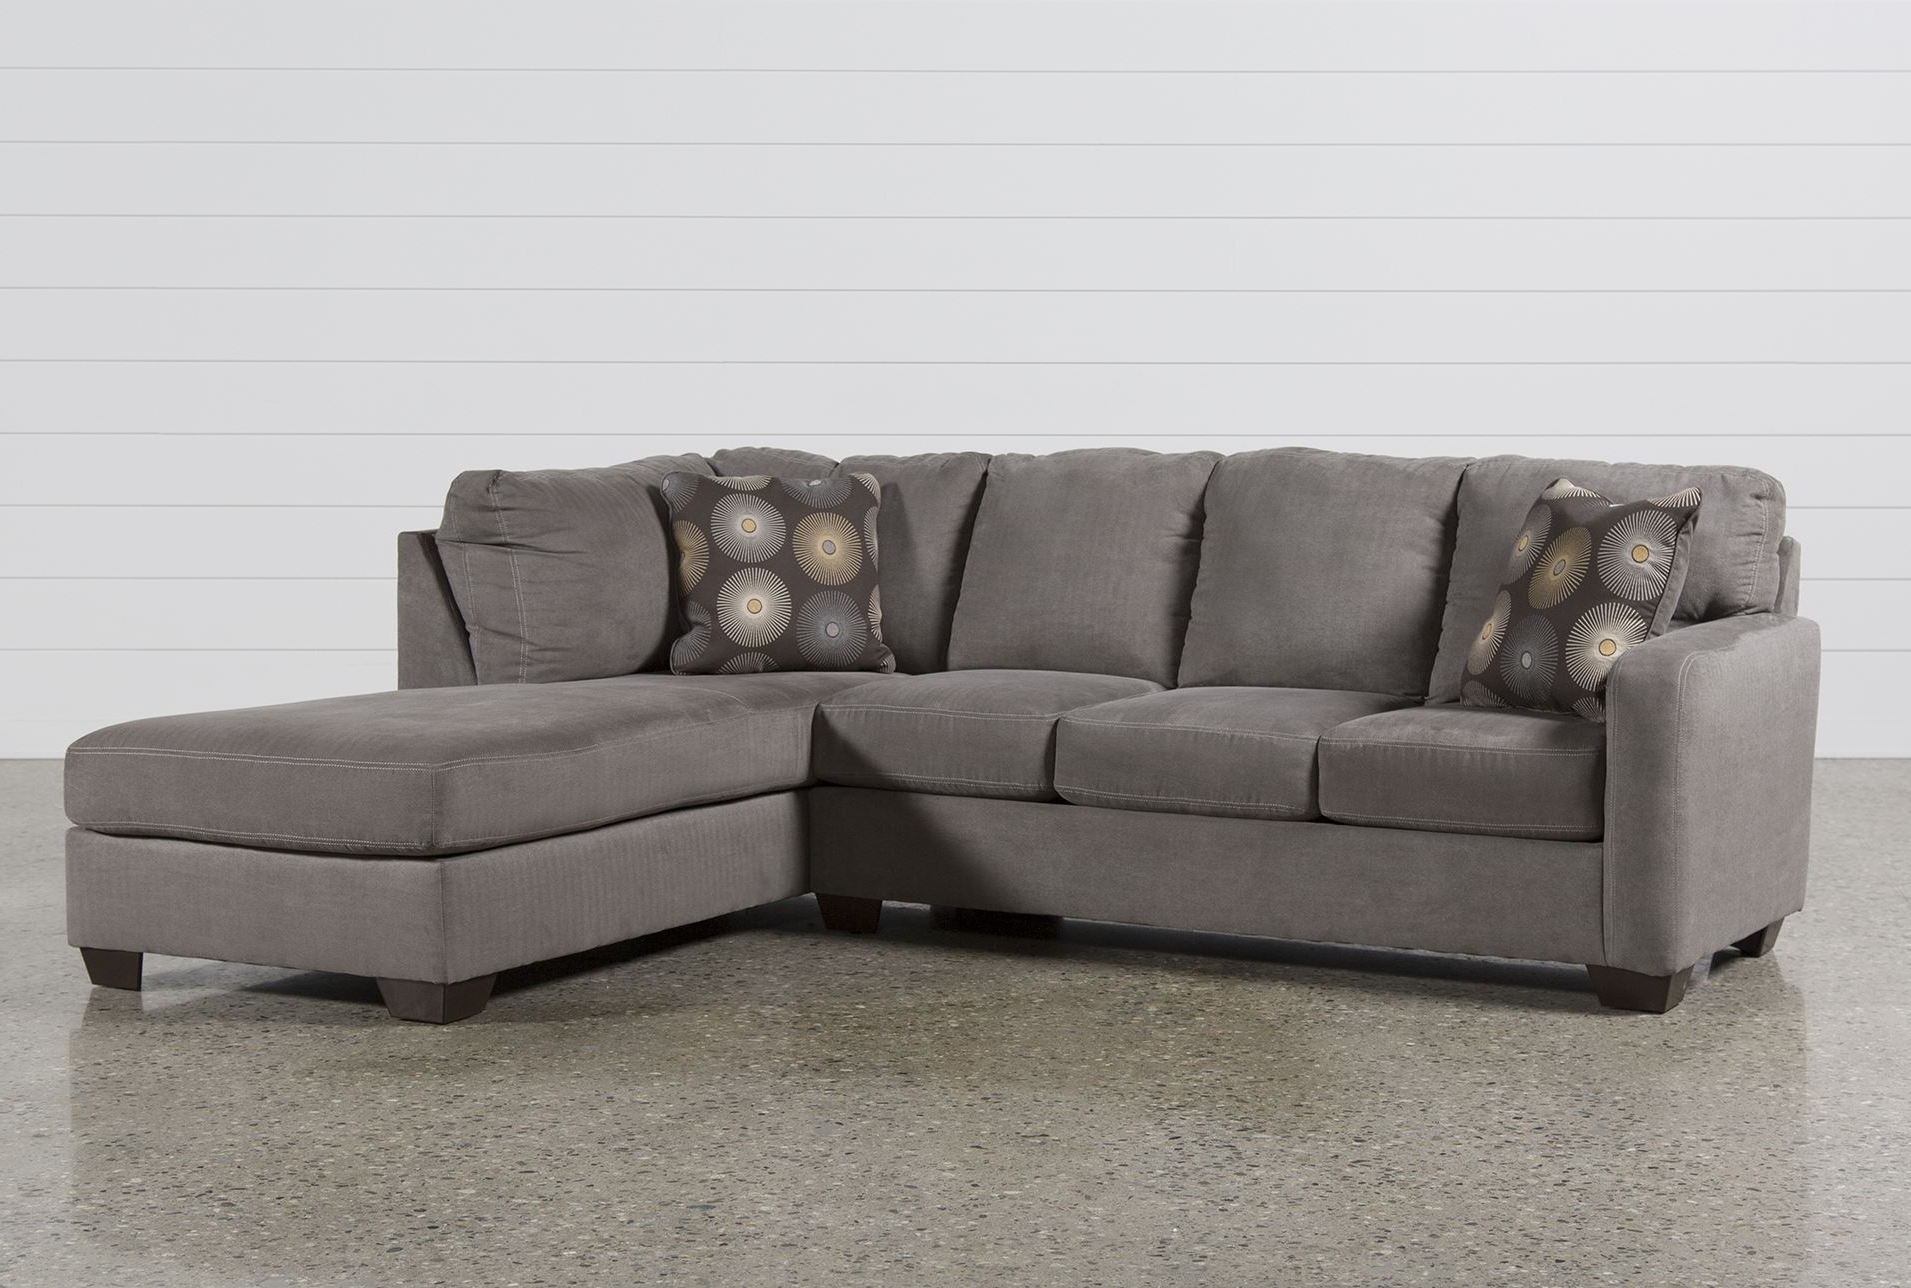 Delightful 2 Piece Sectional Sofas With Chaise Within Fashionable Best 2 Piece  Sectional Sofa 23 For Your